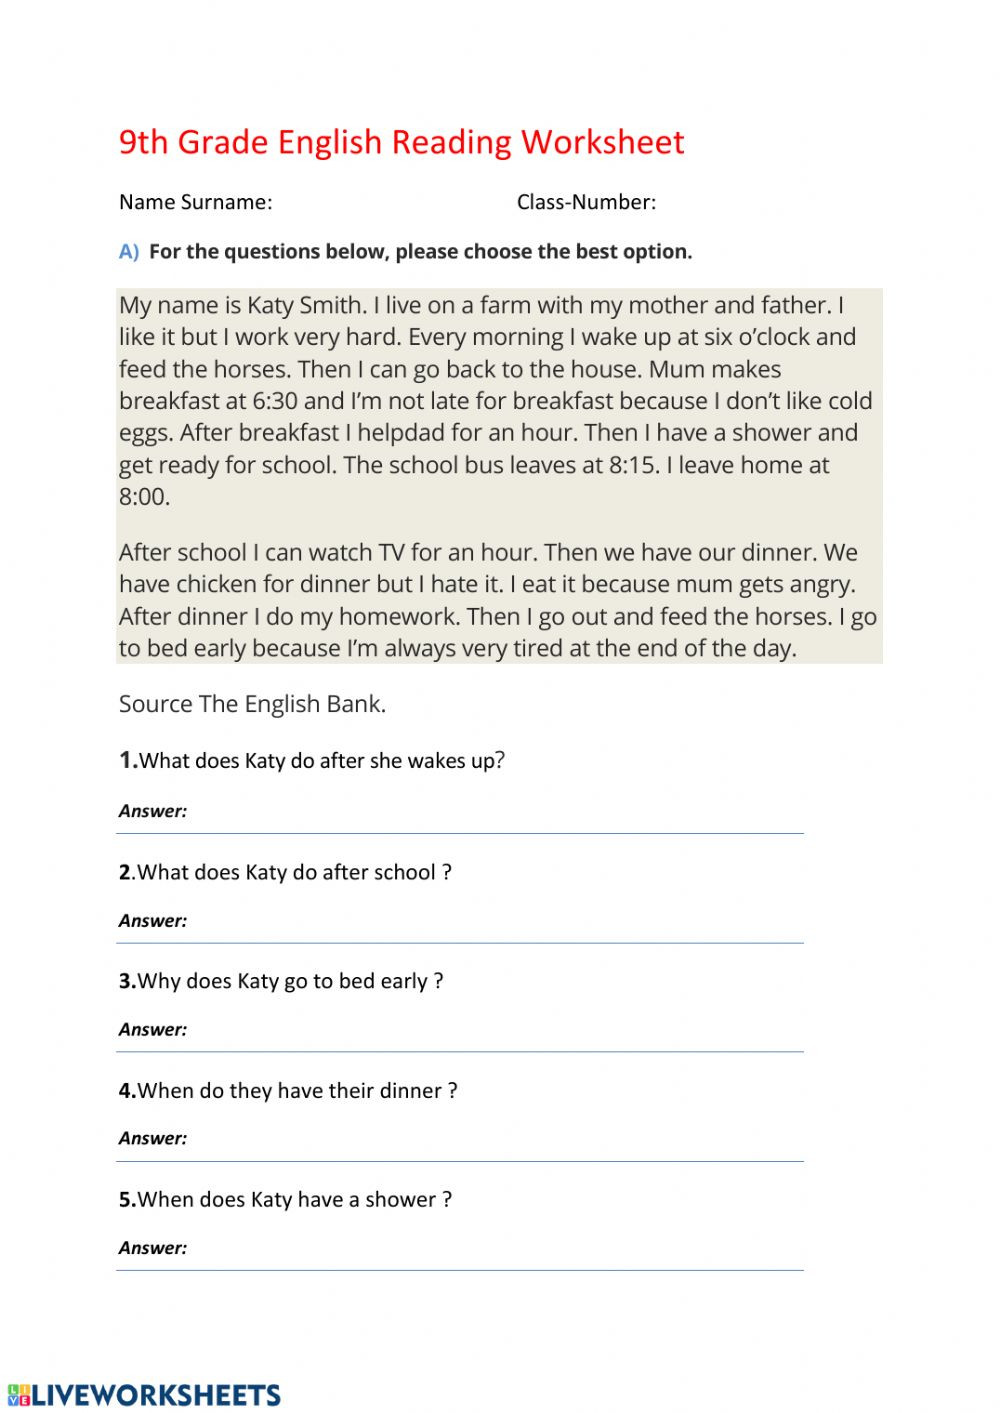 9th Grade Reading Worksheets English Reading Daily Routine Interactive Worksheet